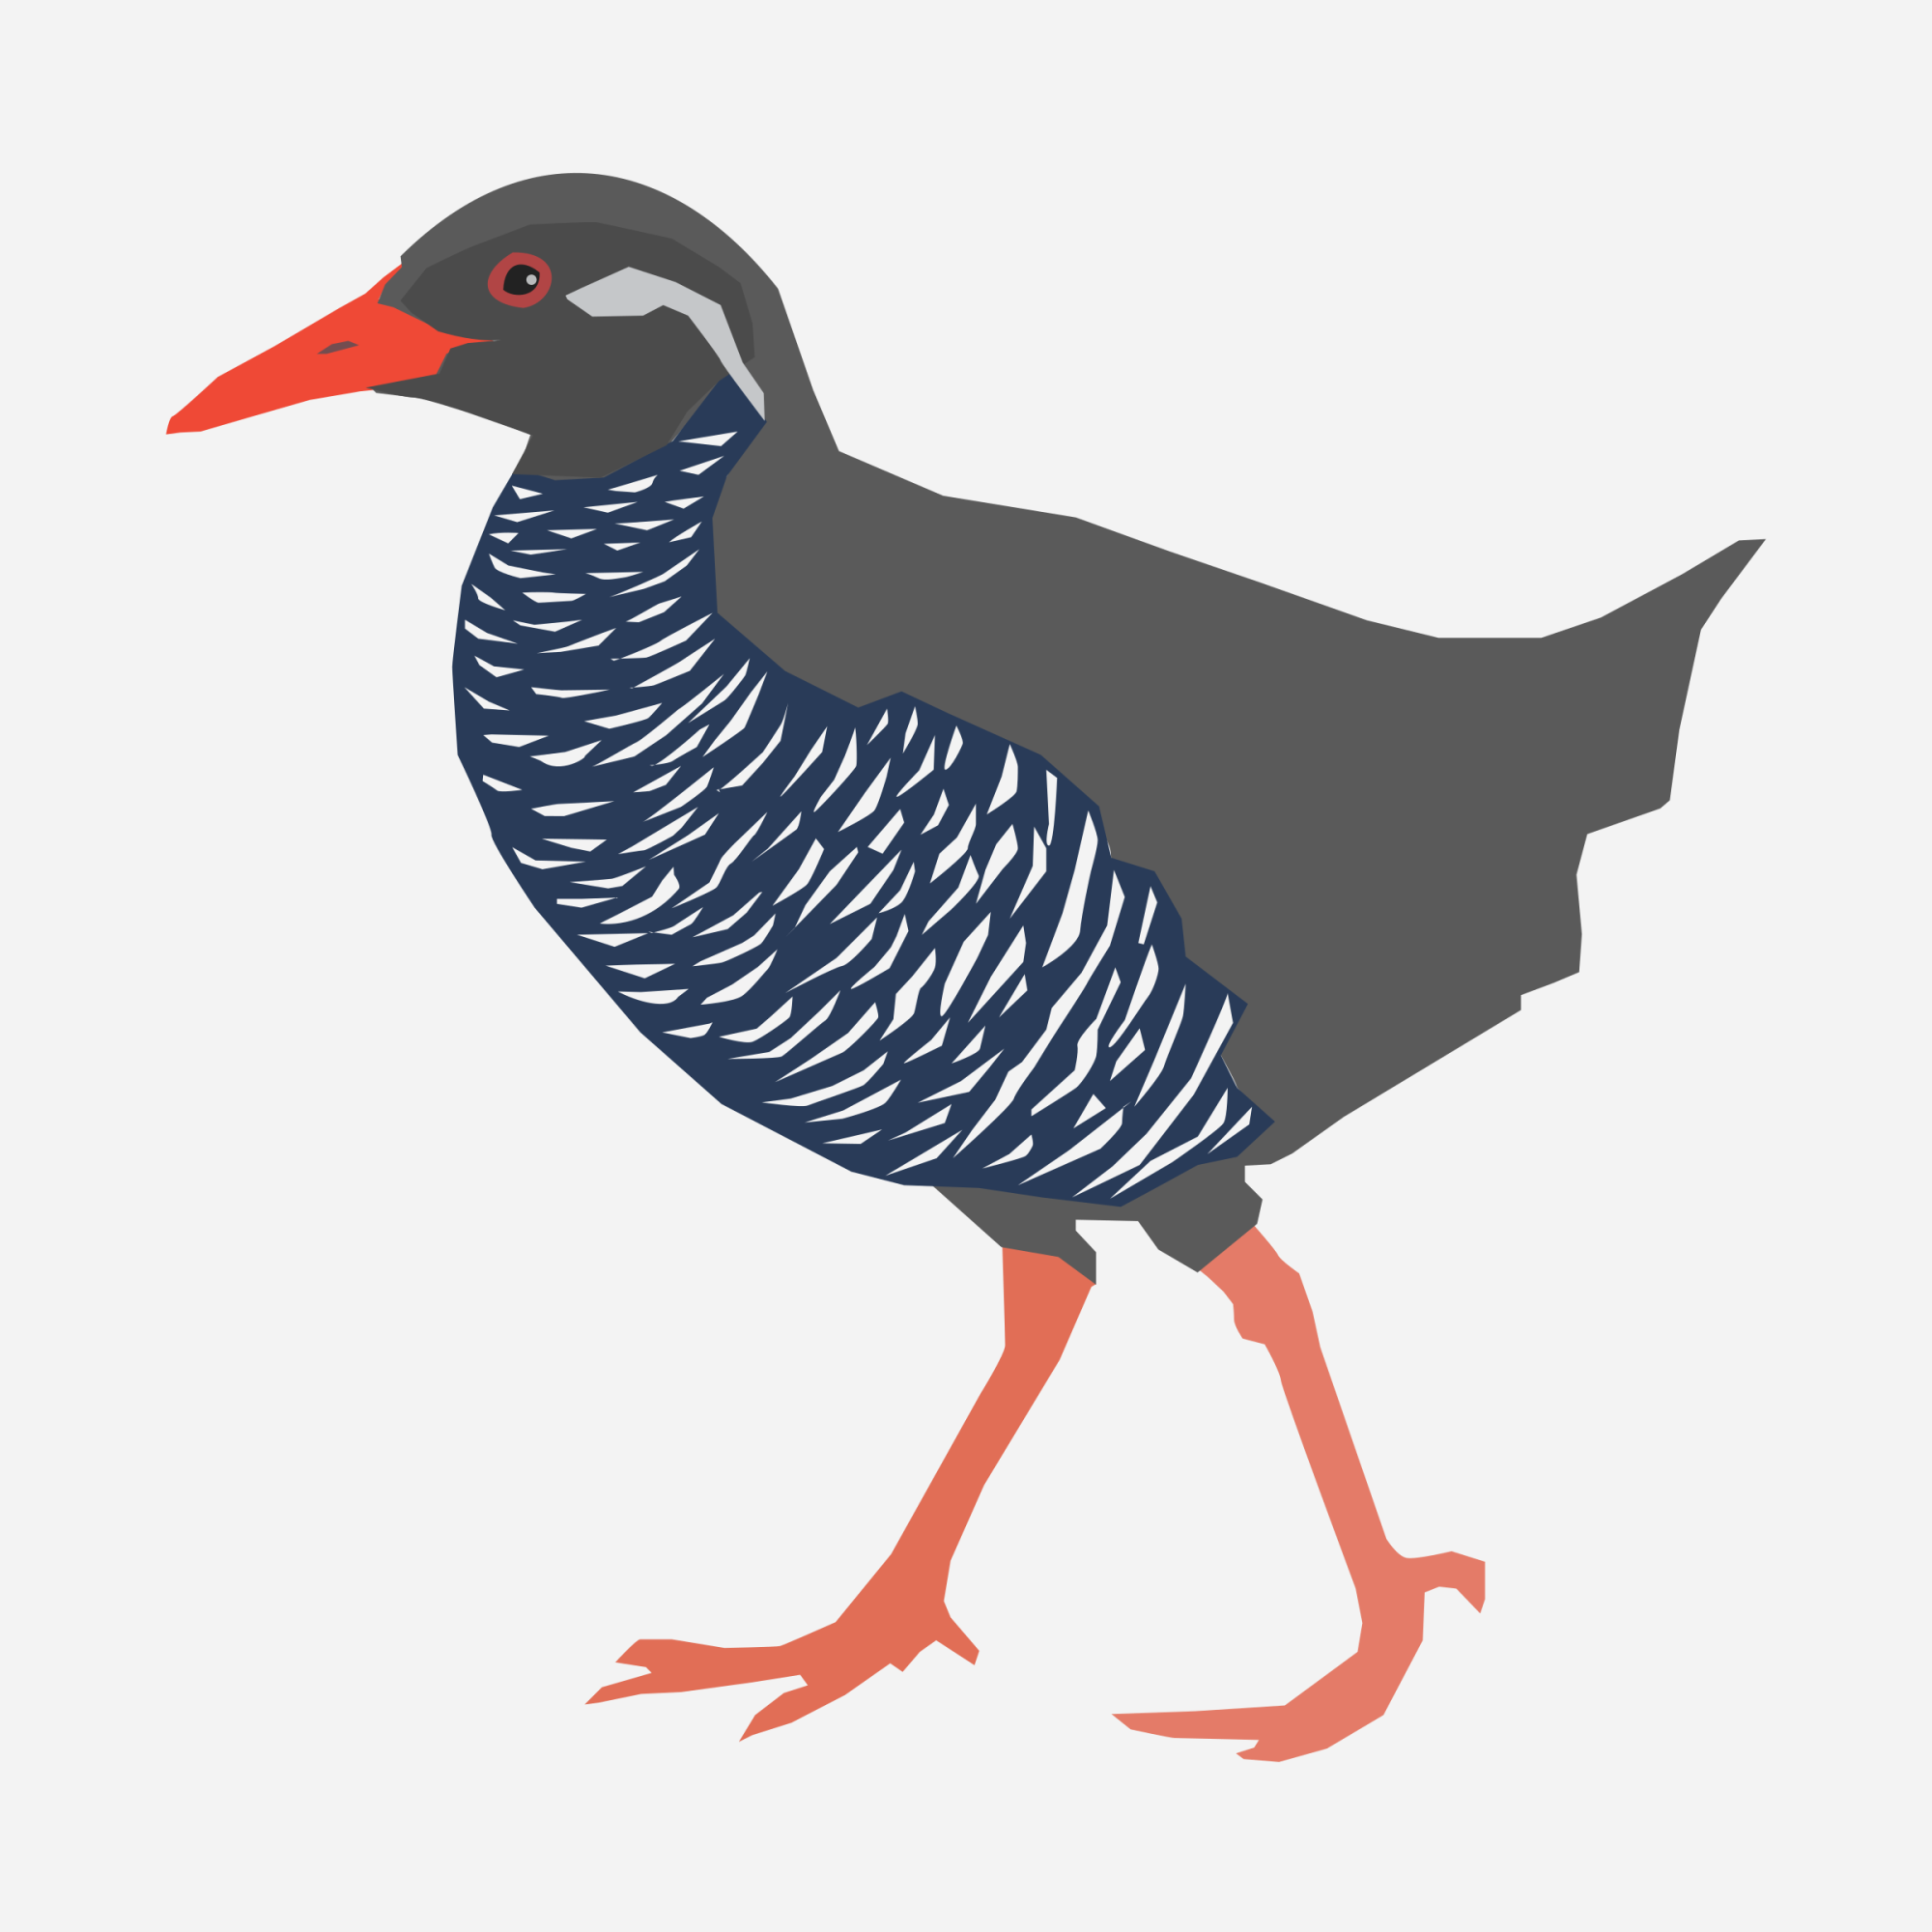 hight resolution of big image png rail bird clipart